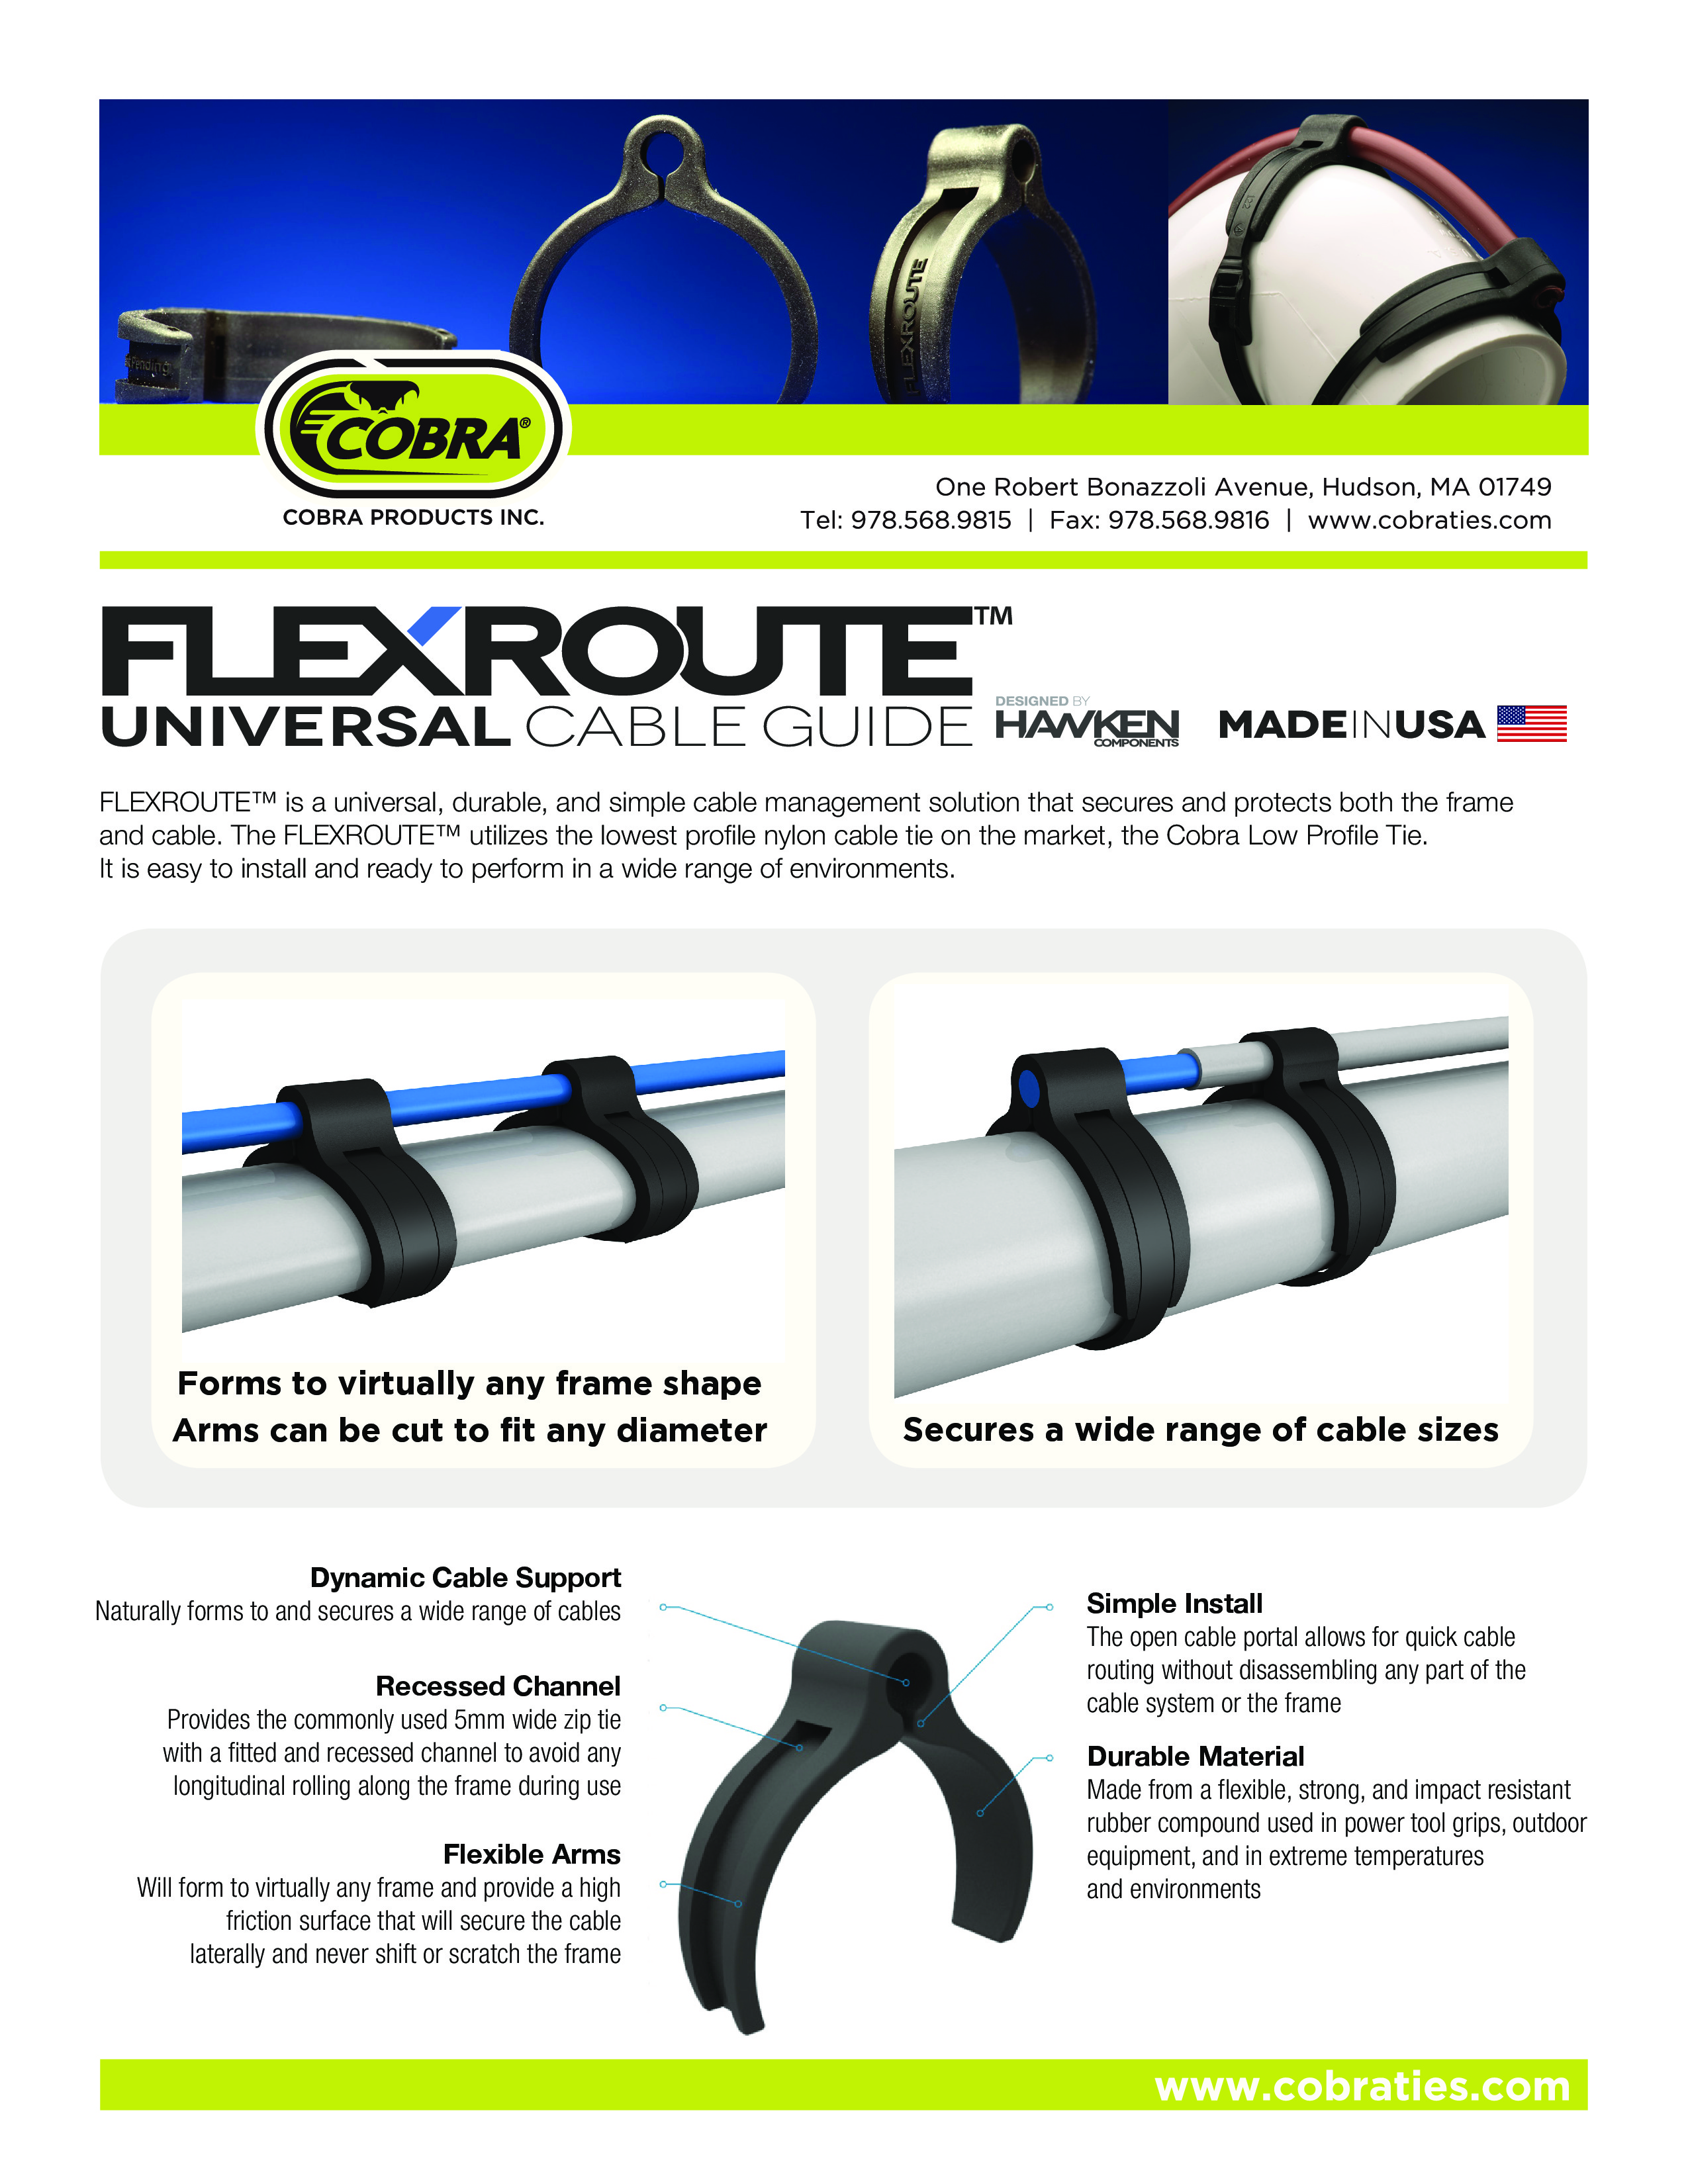 FLEXROUTE in Conjunction with Cobra Tie